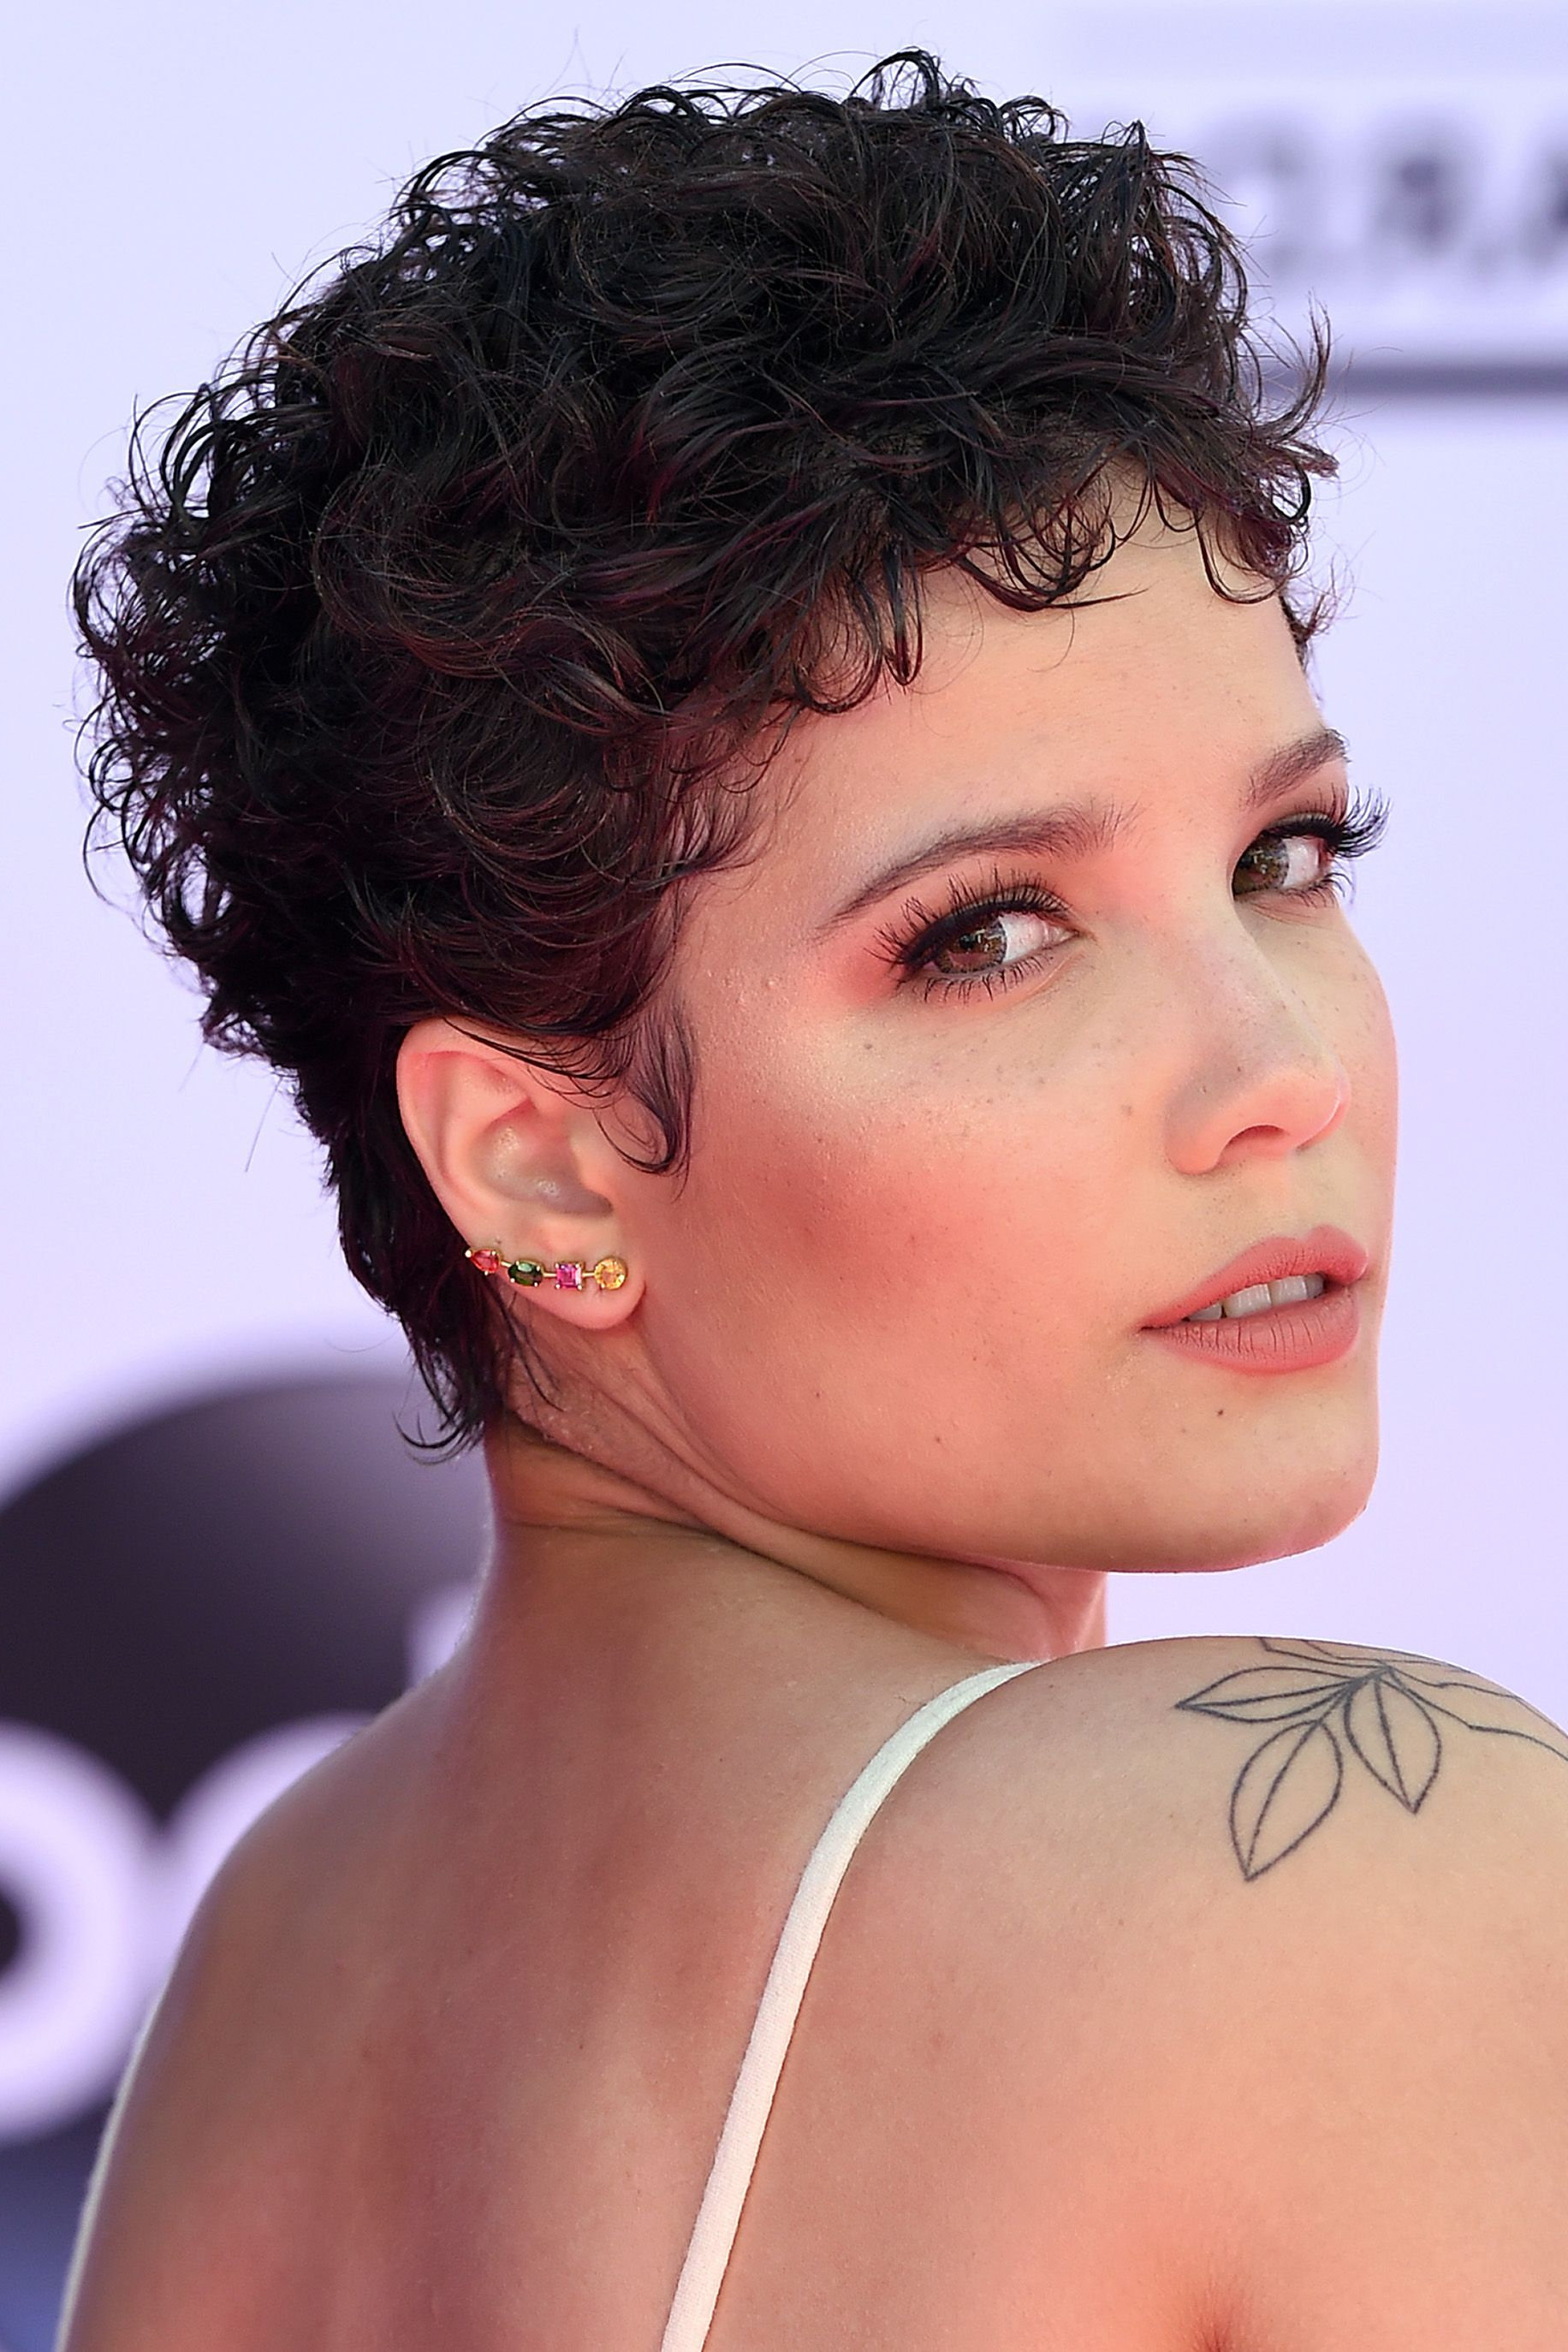 20 Celebrity Short Curly Hair Ideas – Short Haircuts And Hairstyles In Short Haircuts For Very Curly Hair (View 13 of 25)